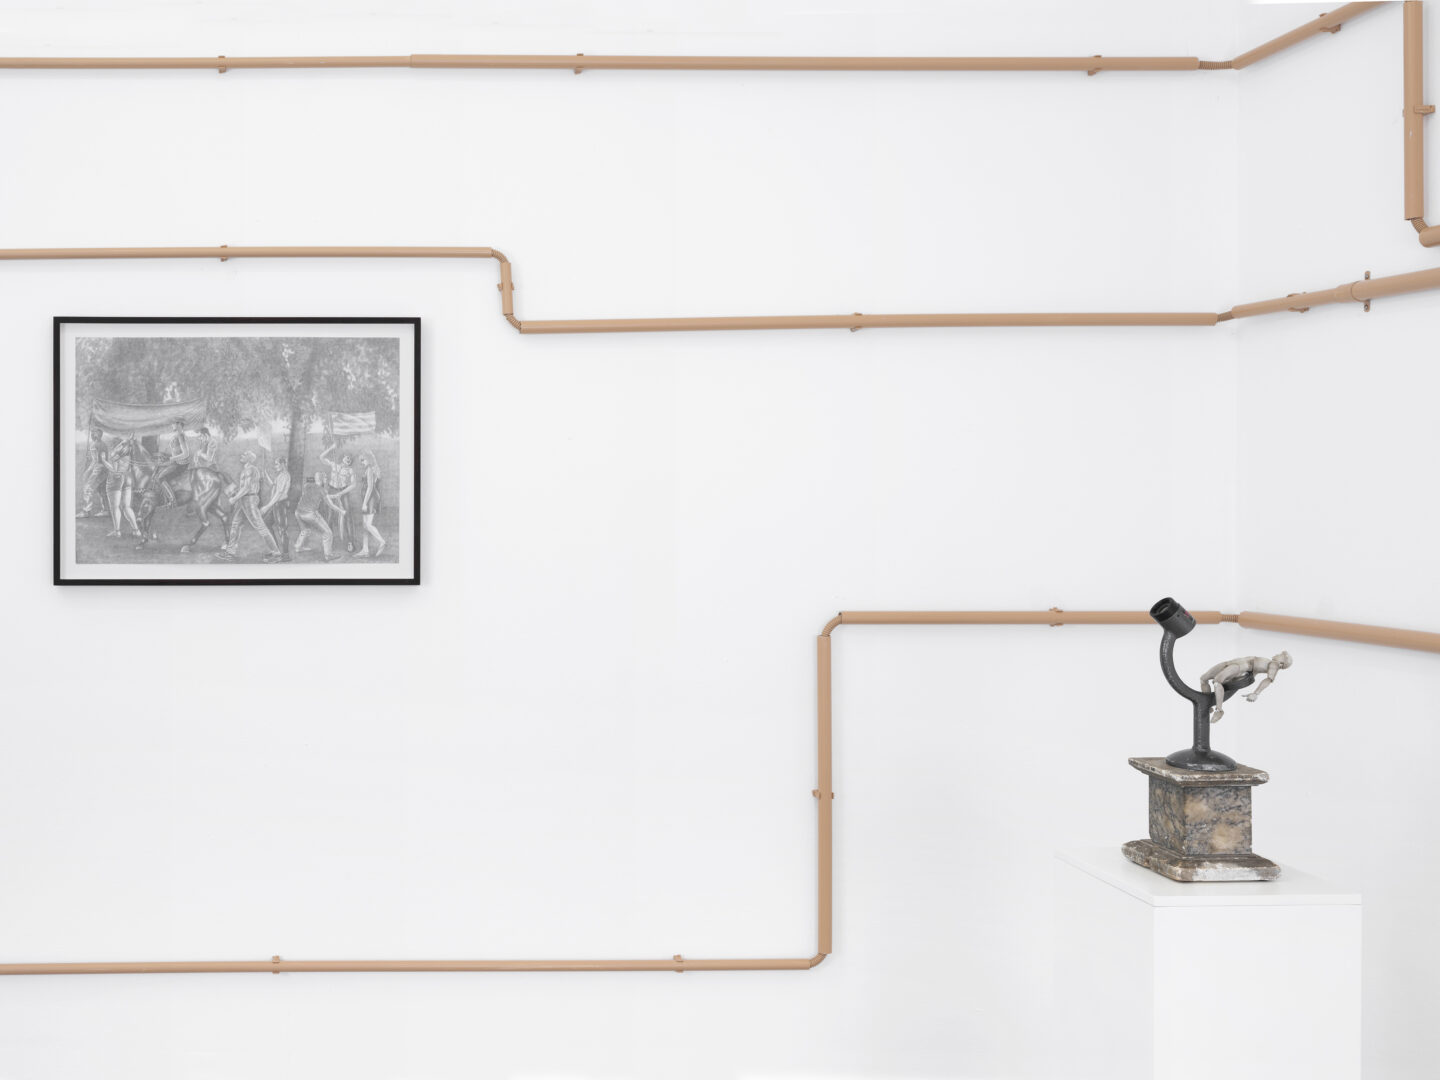 Exhibition View Groupshow «Hatch» at Truth and Consequences, Geneva / Photo: Julien Gremaud / Courtesy: the artist and T&C